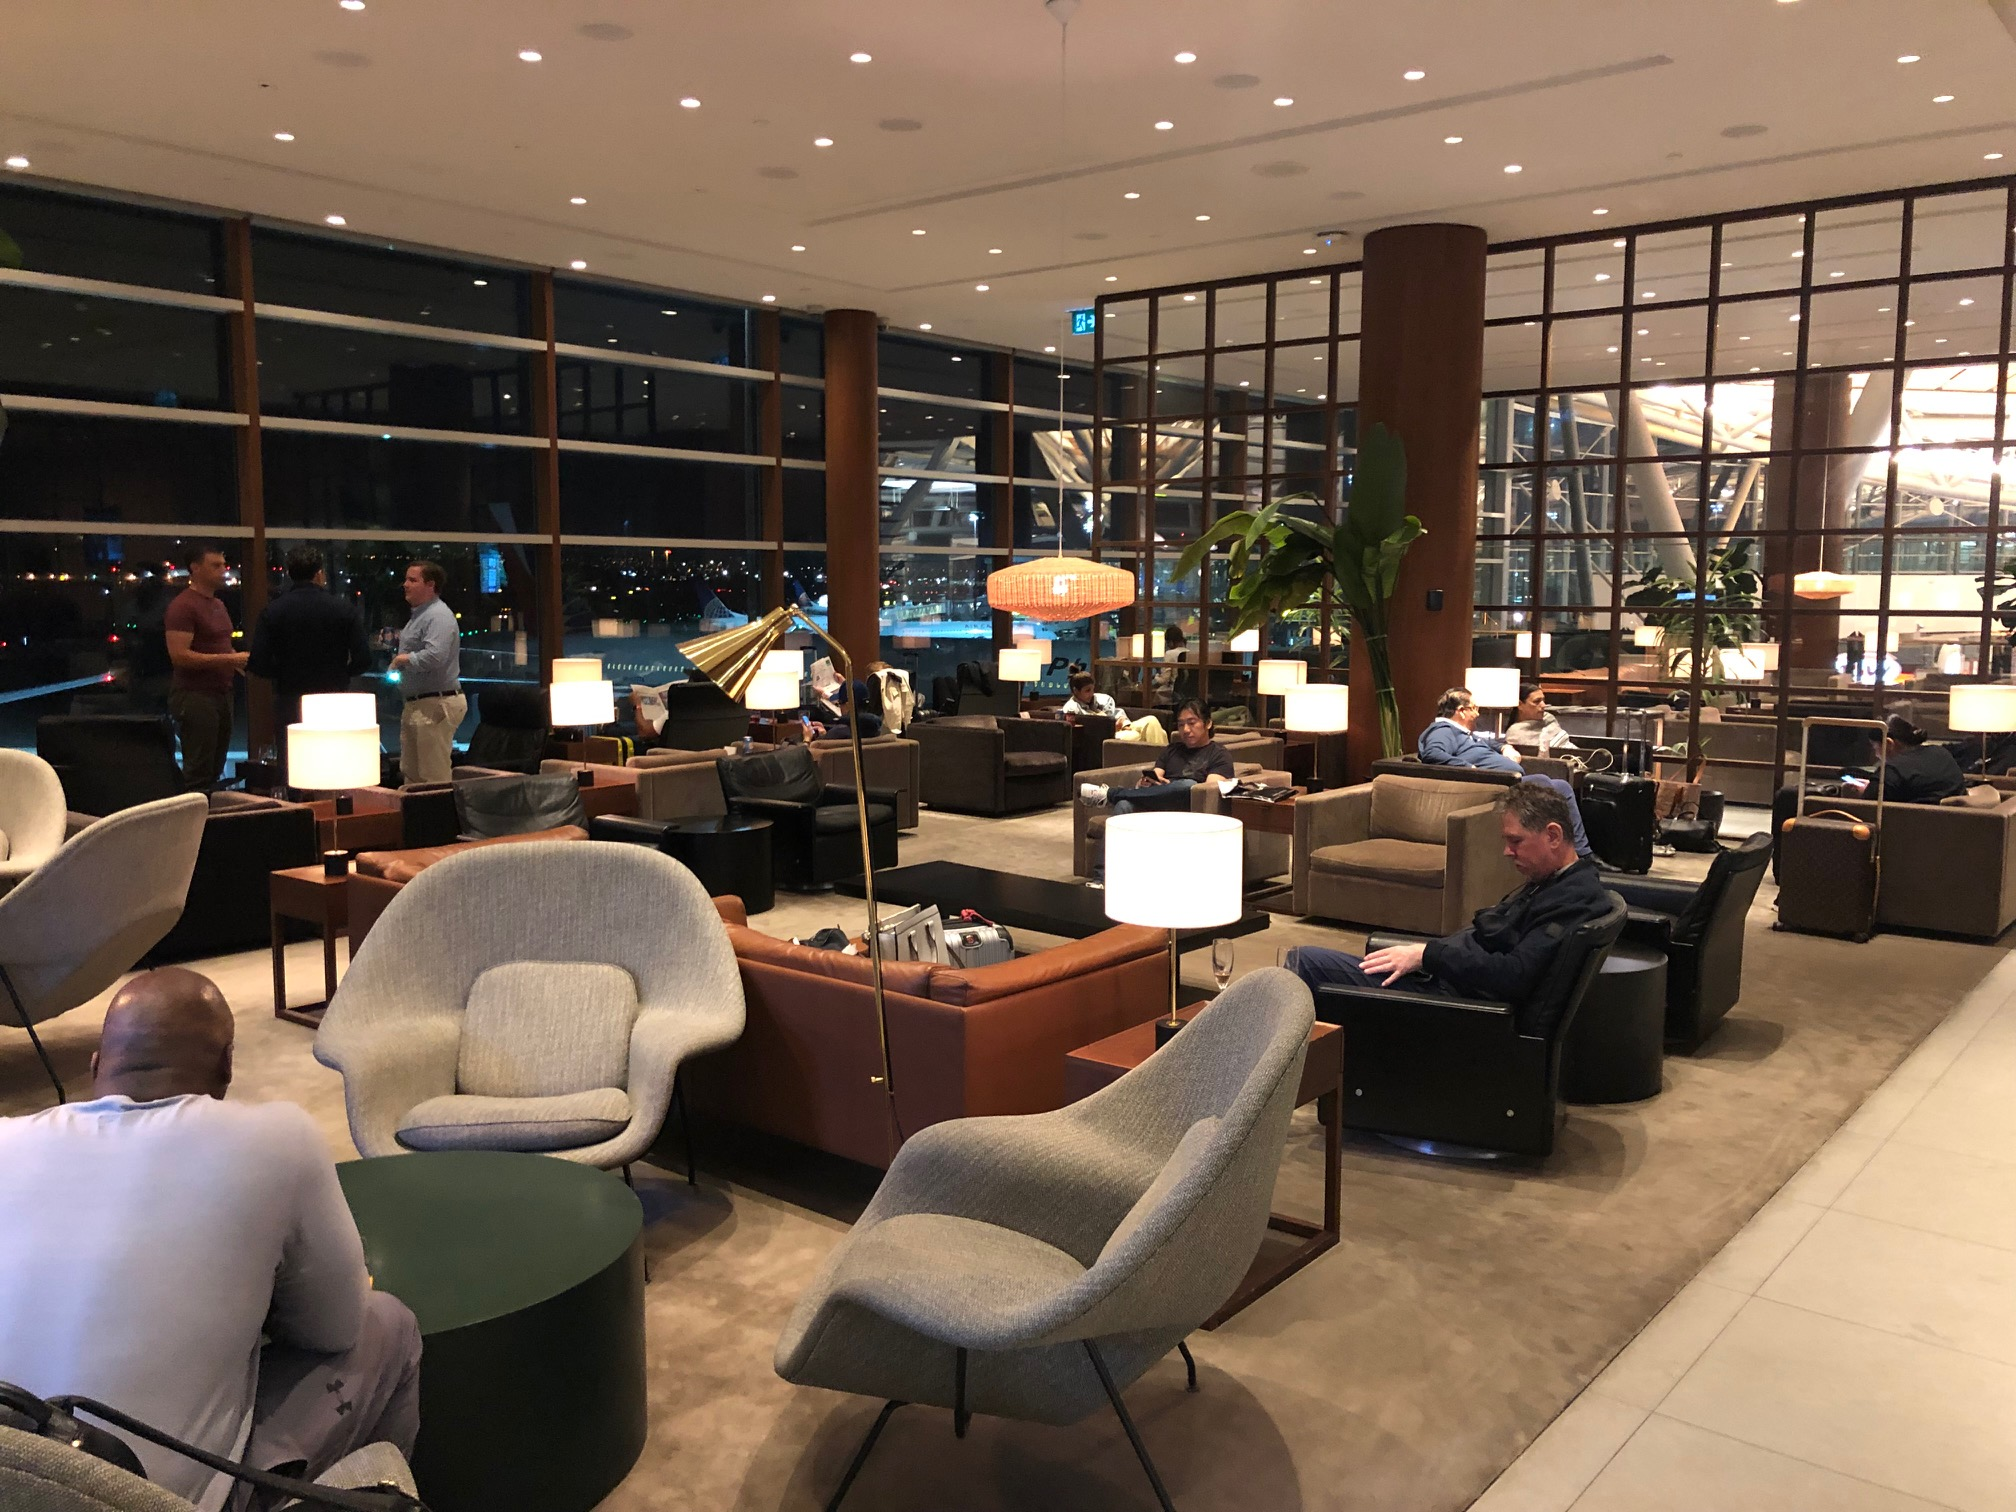 Cathay Pacific Lounge - Seating Area